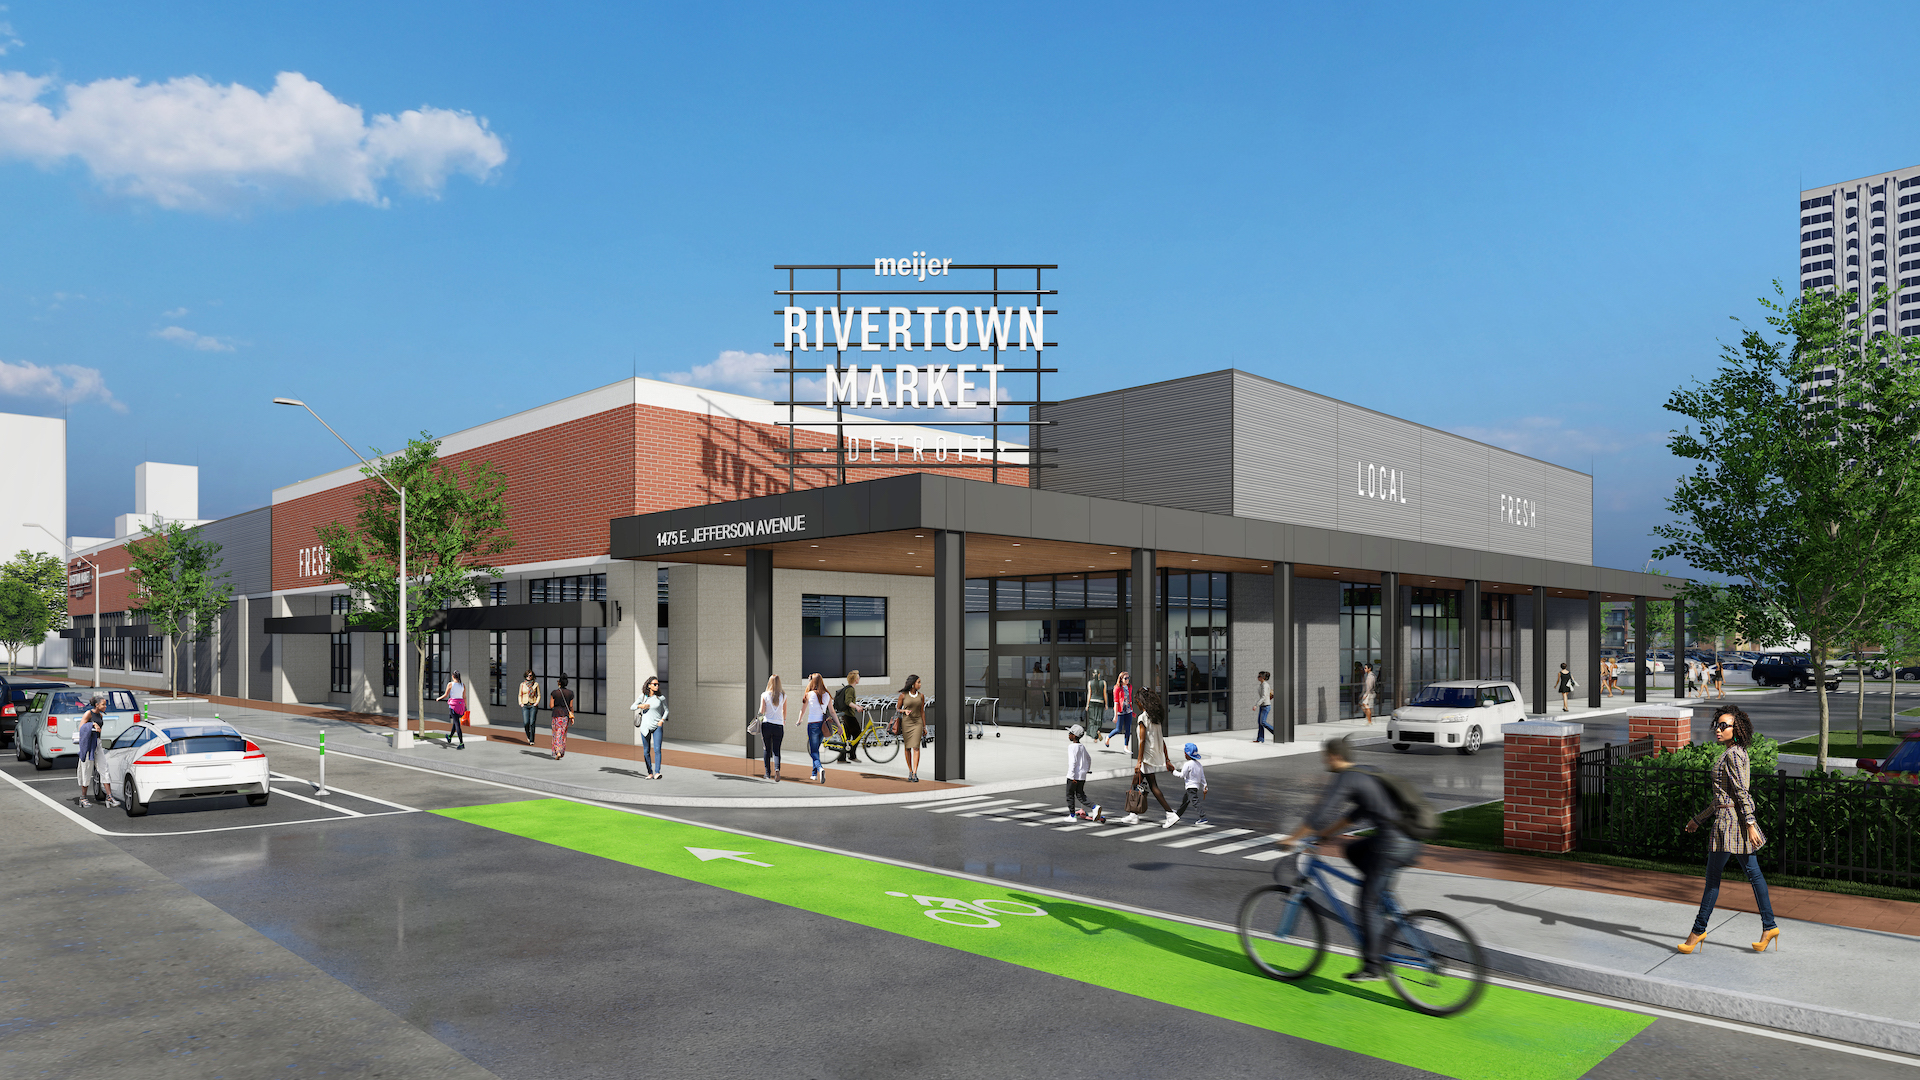 A boxy rendering of a market with a big corner sign reading Rivertown Market and bike lanes along East Jefferson.